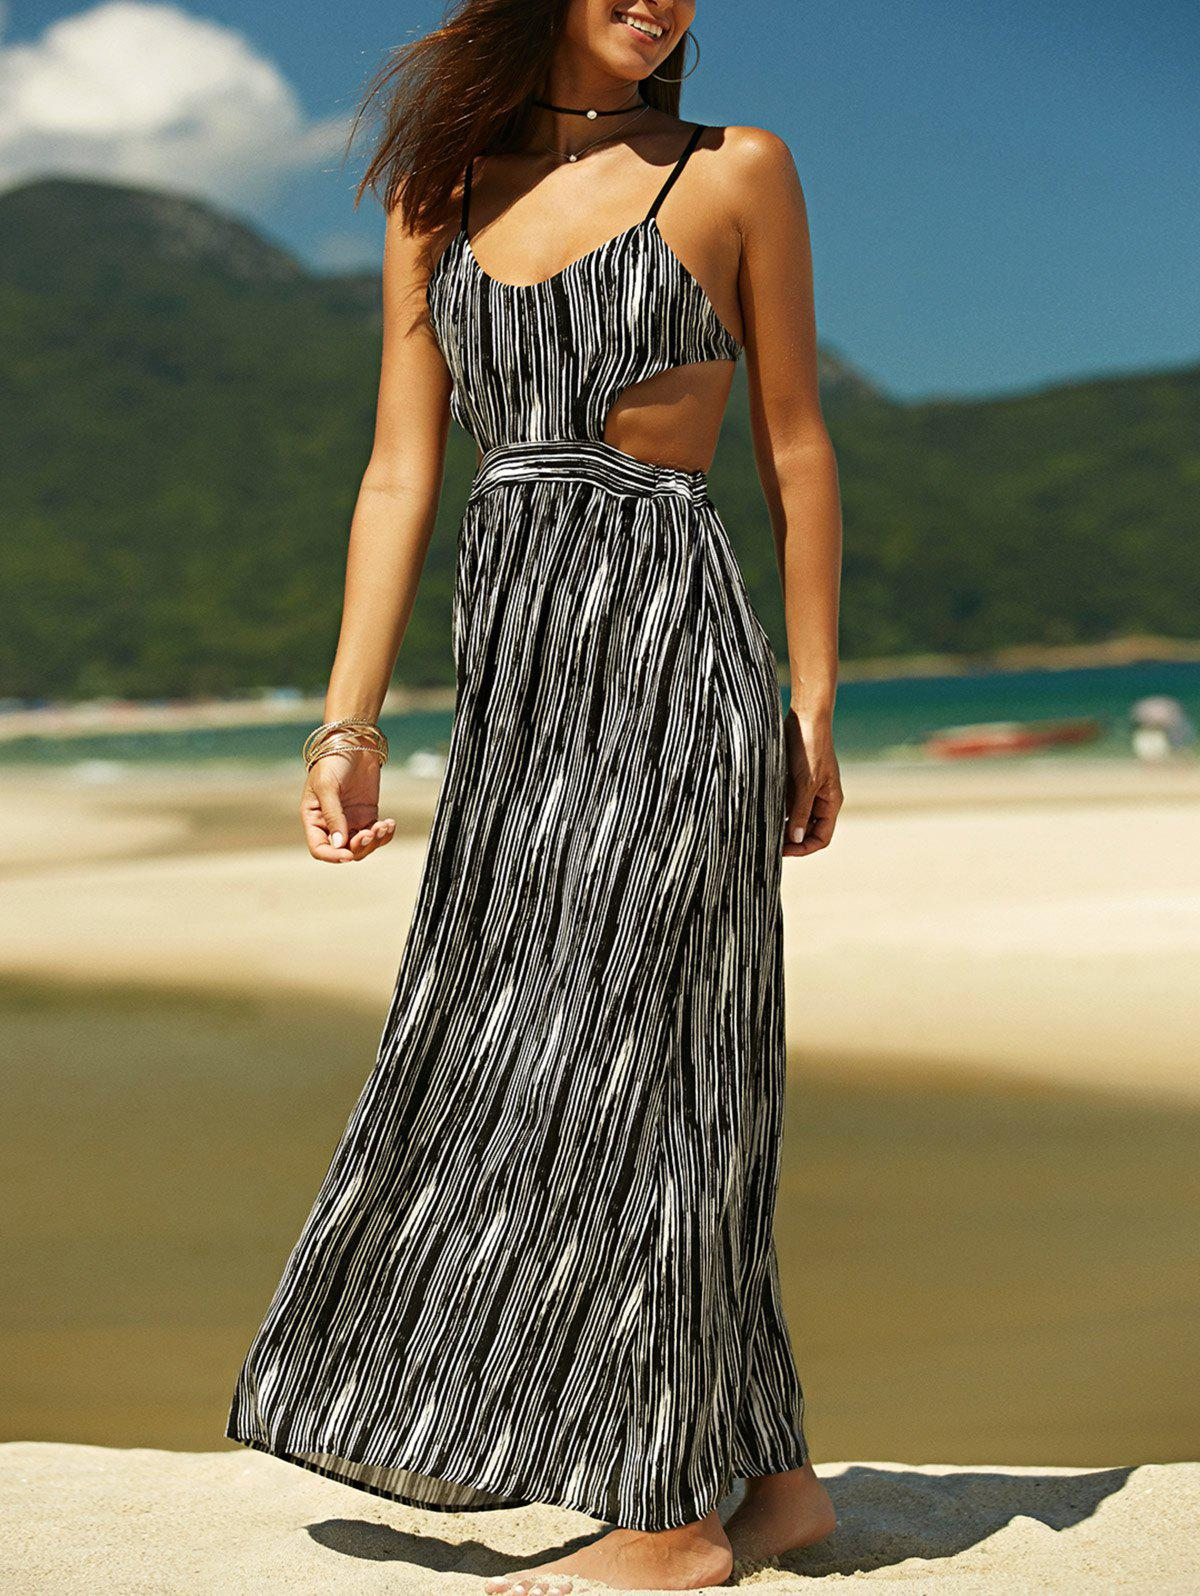 Bohemian Spaghetti Strap Printed Backless Criss-Cross Women's Dress - BLACK XL